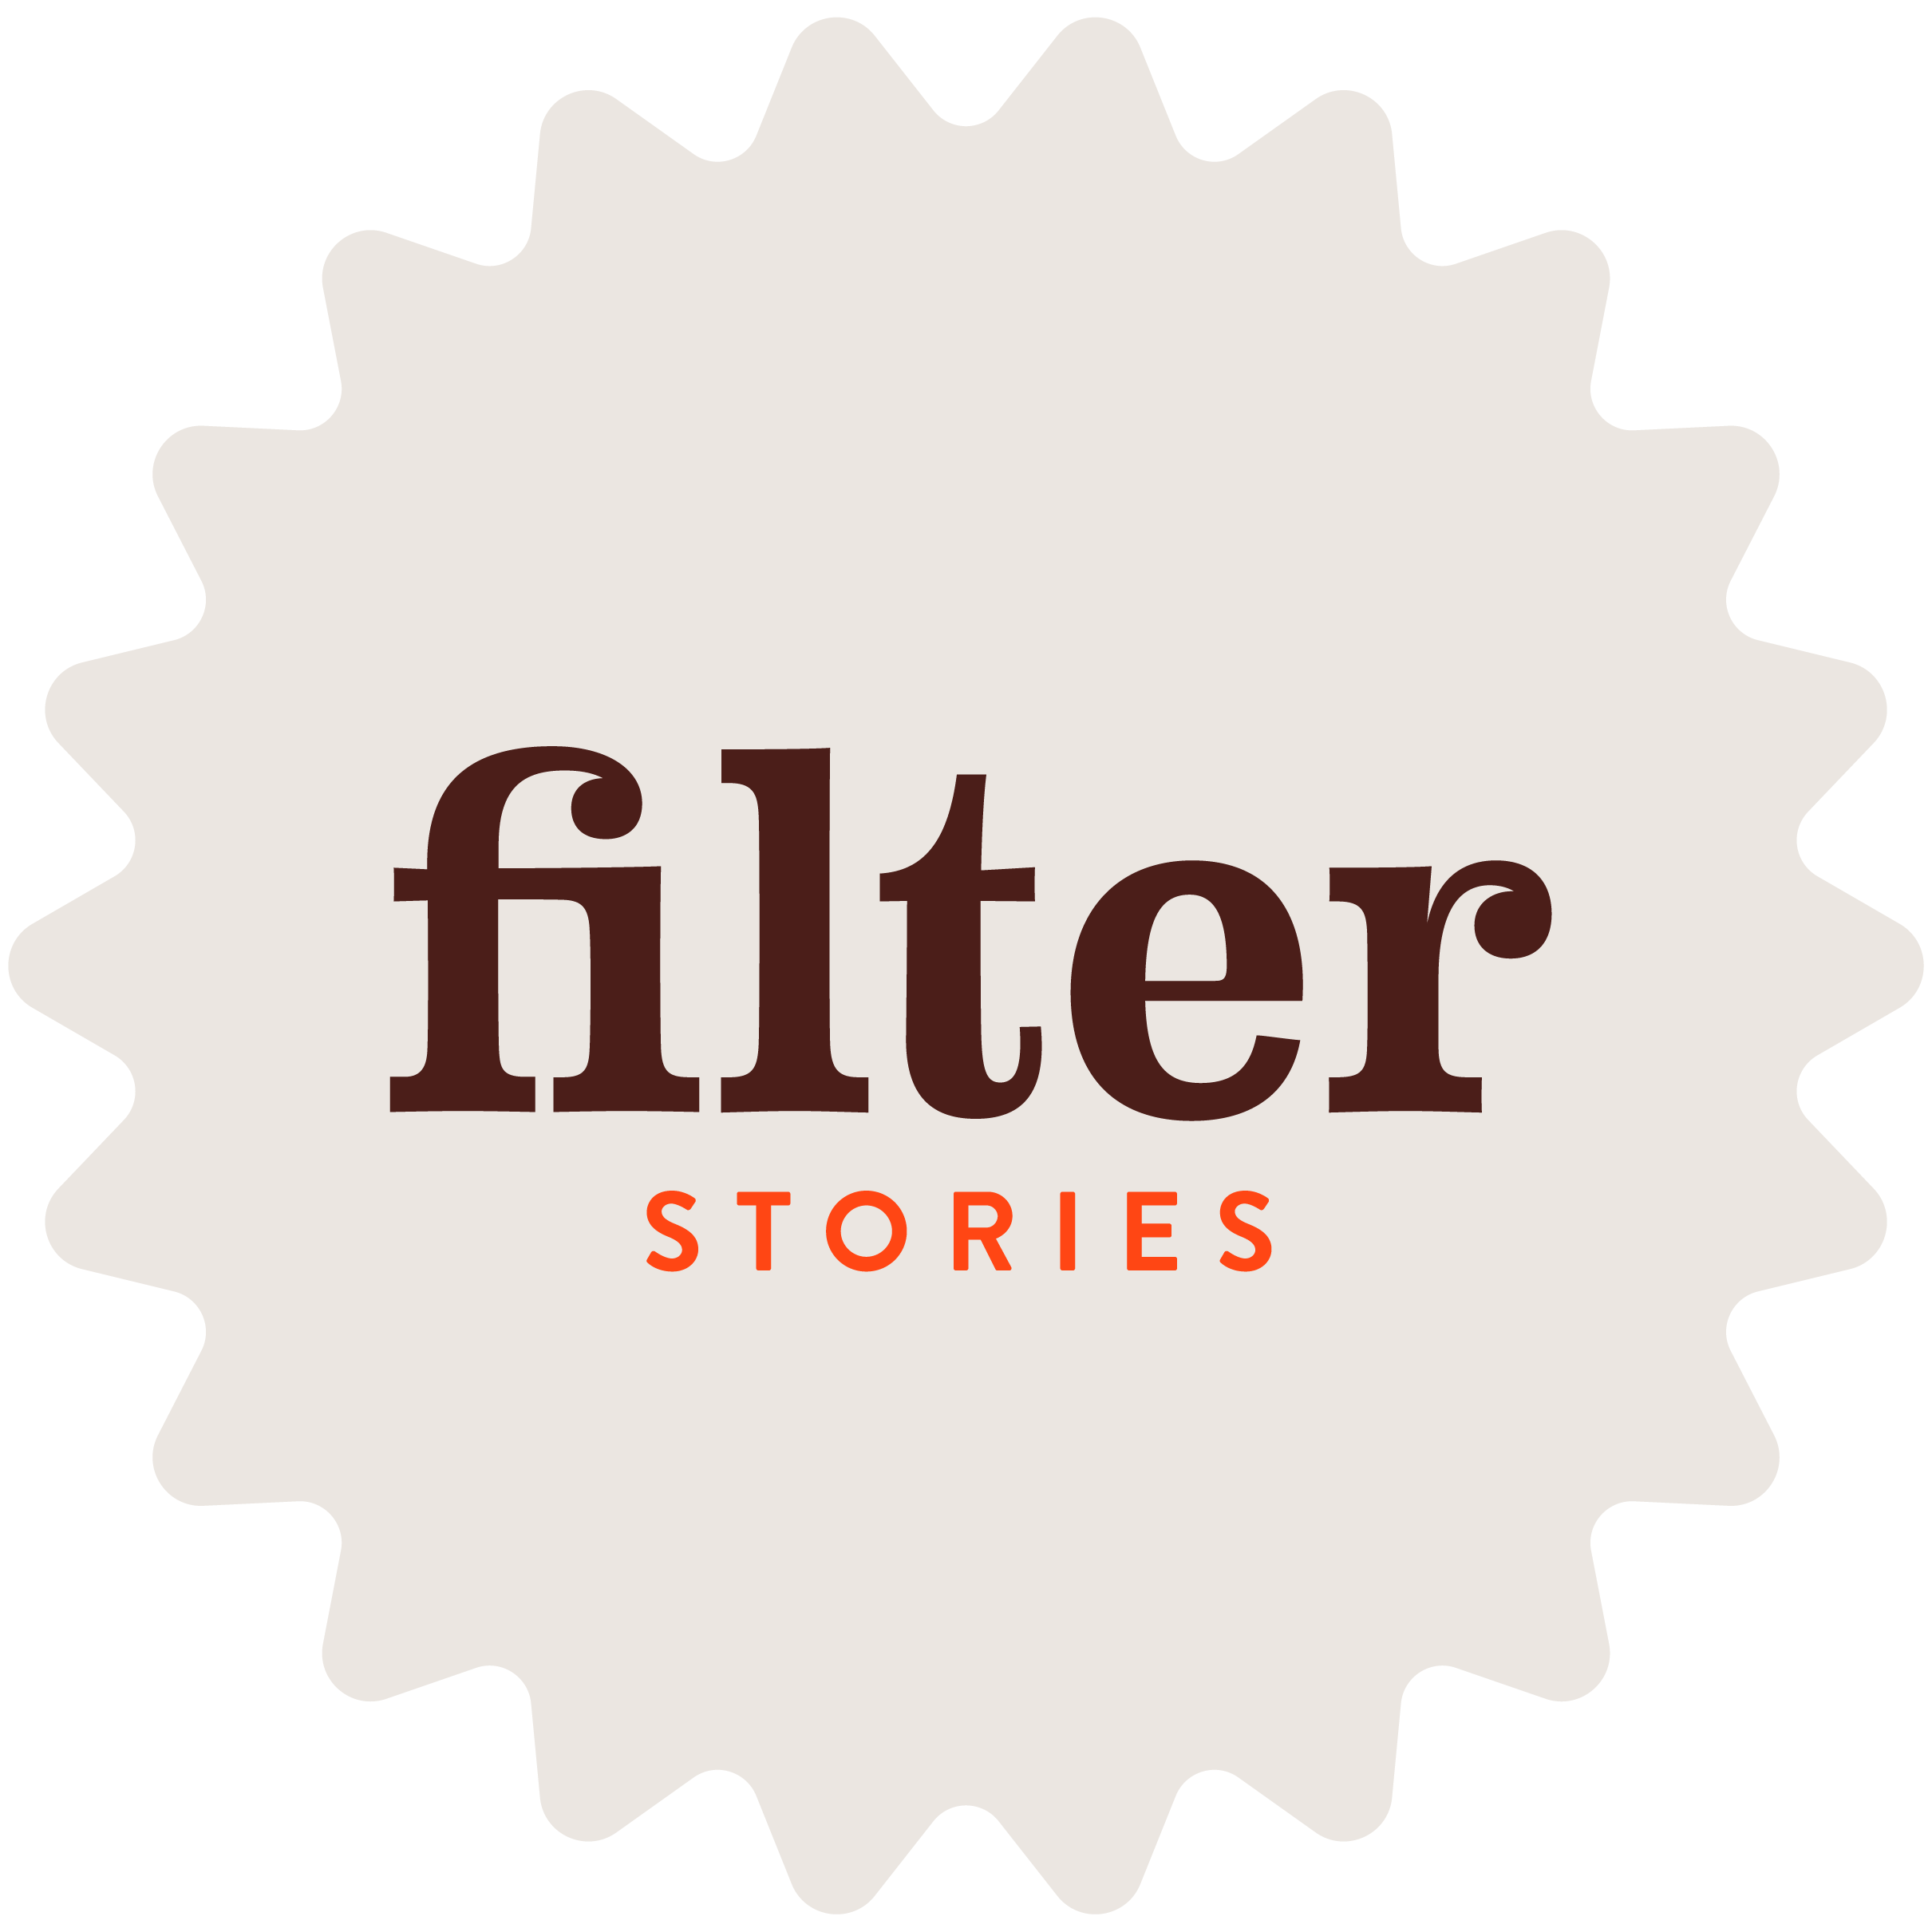 Filter Stories album art